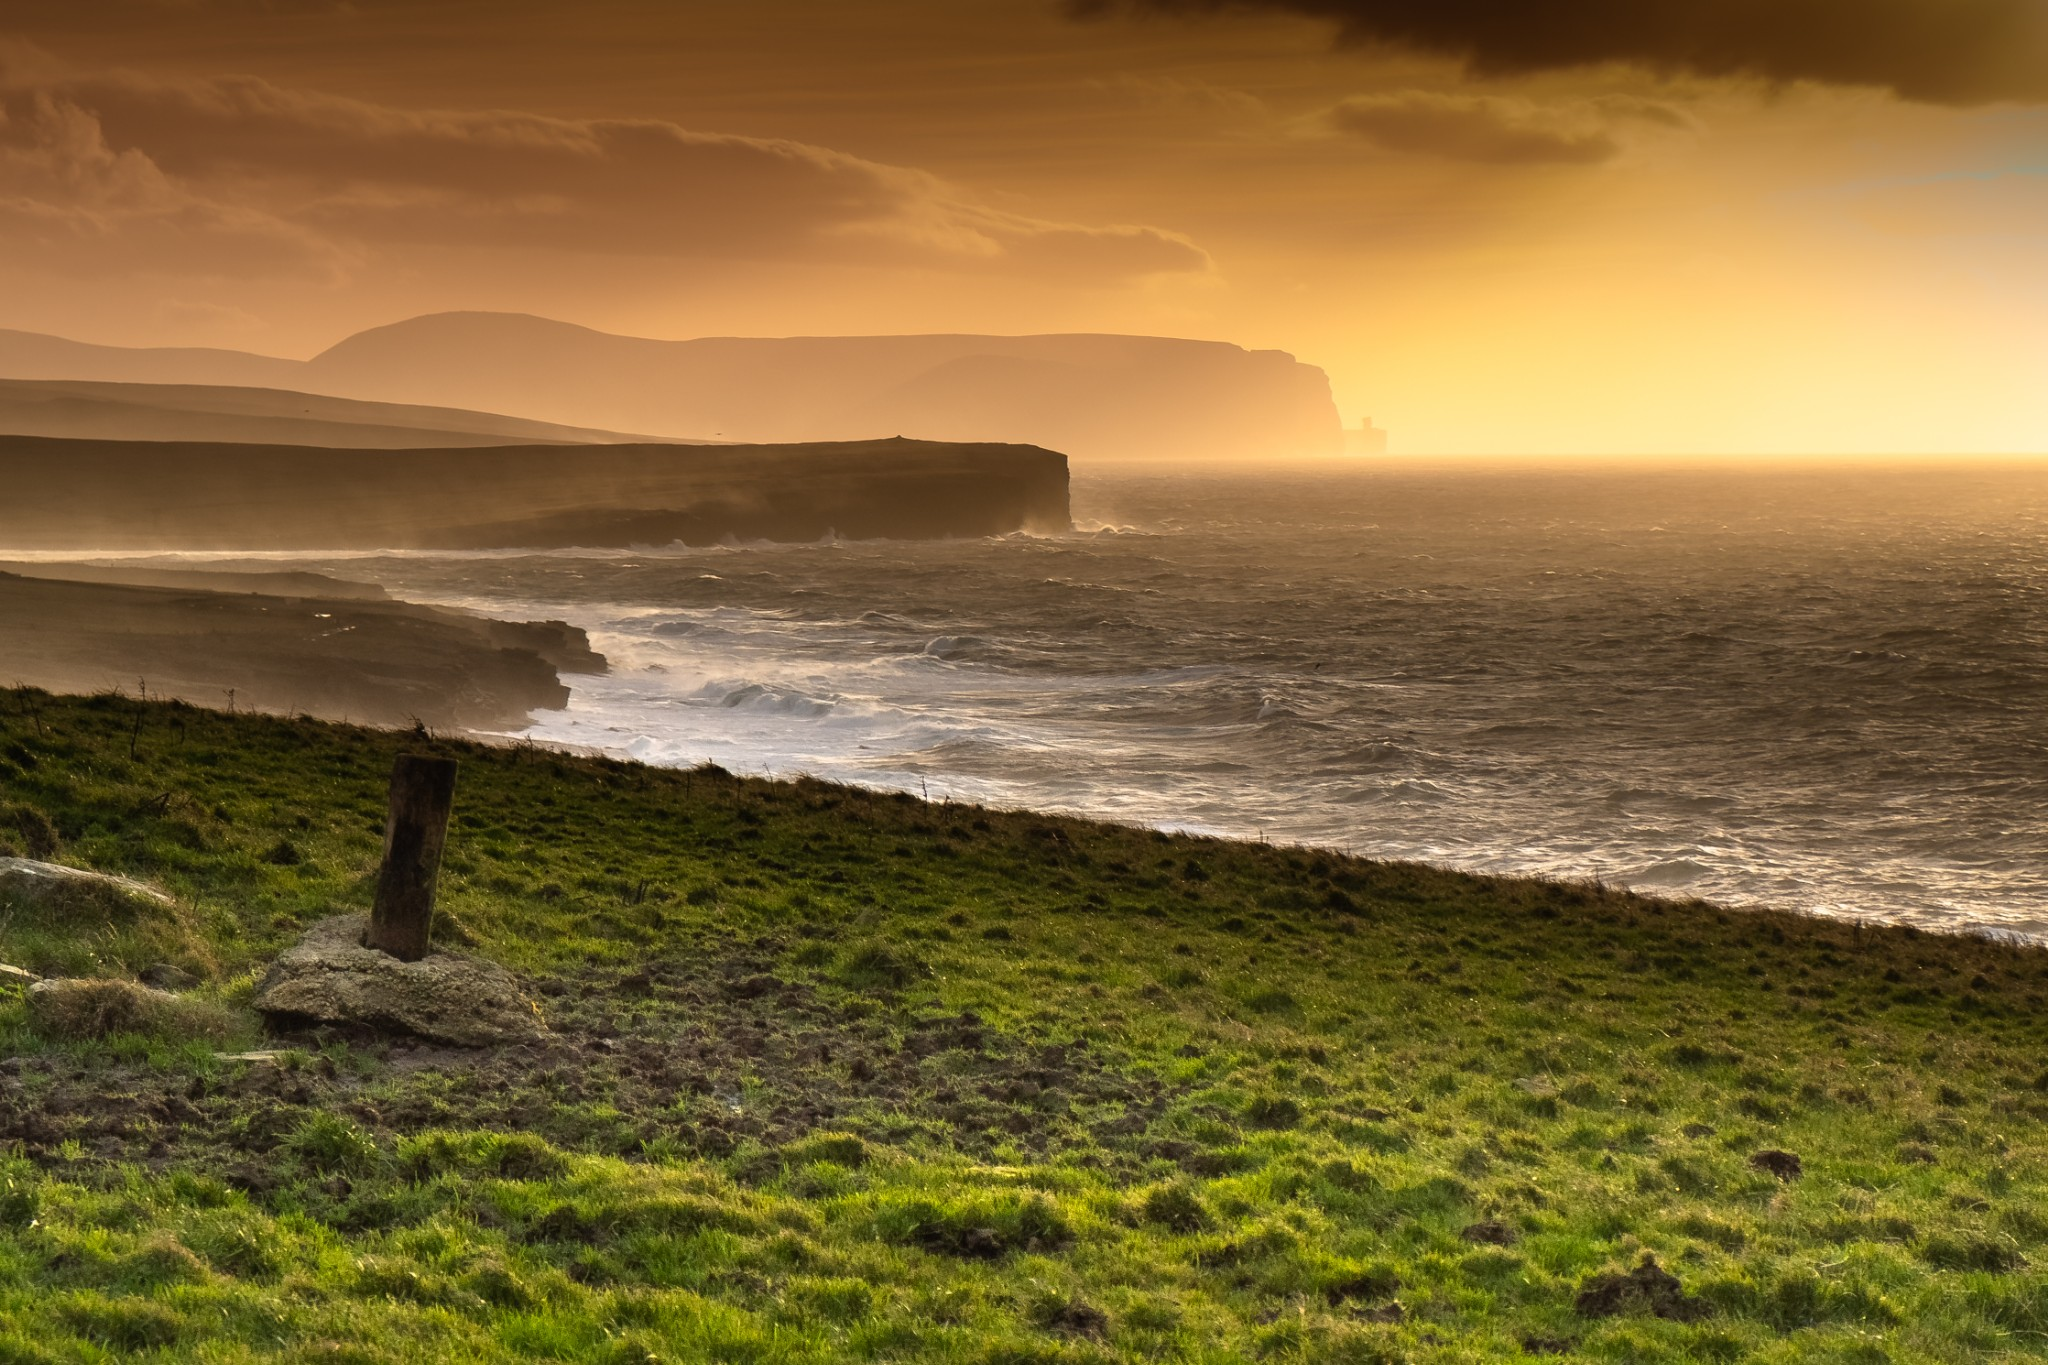 View along Orkney's west coast - image by Dave Neil